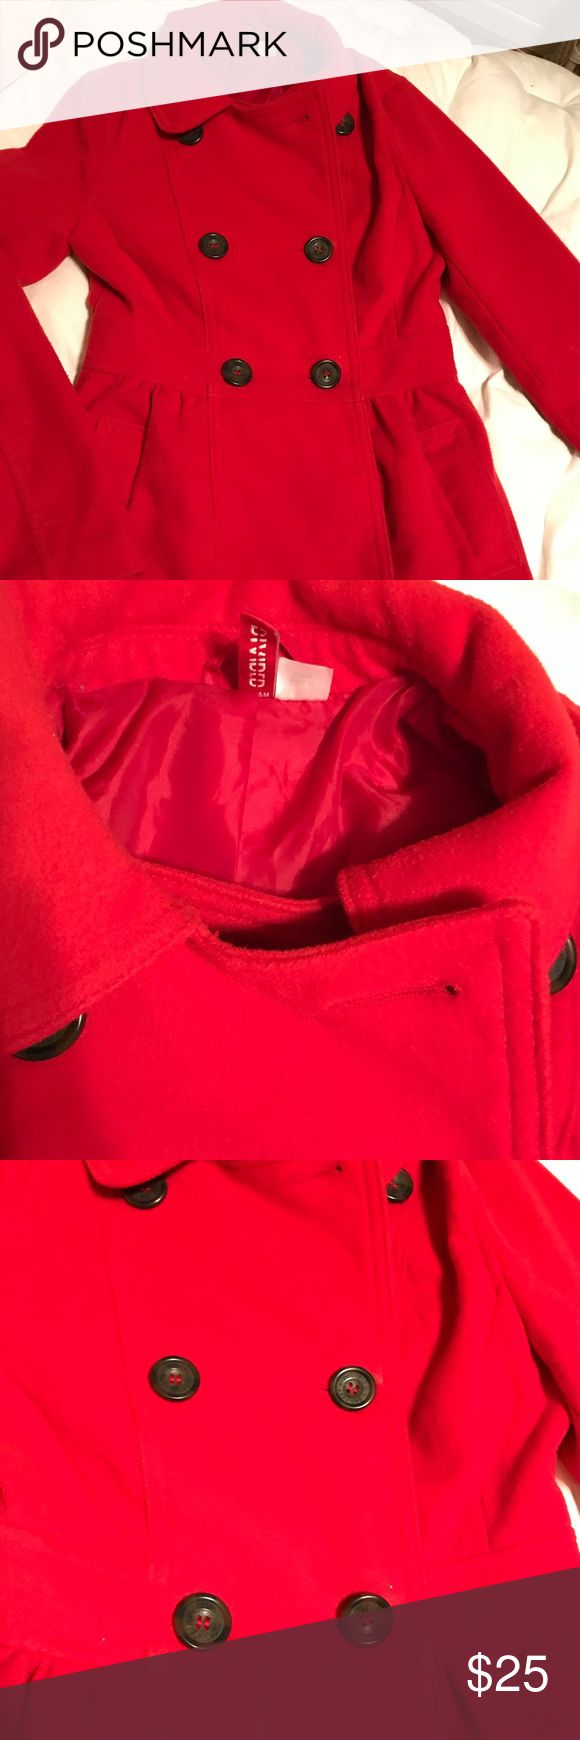 Red pea coat h&m juniors divided size 4 jacket Beautiful jacket by h&m divided. Size 4. Fully lined. Gathered at the waist for a figure flattering look. Gently worn. H&M Jackets & Coats Pea Coats